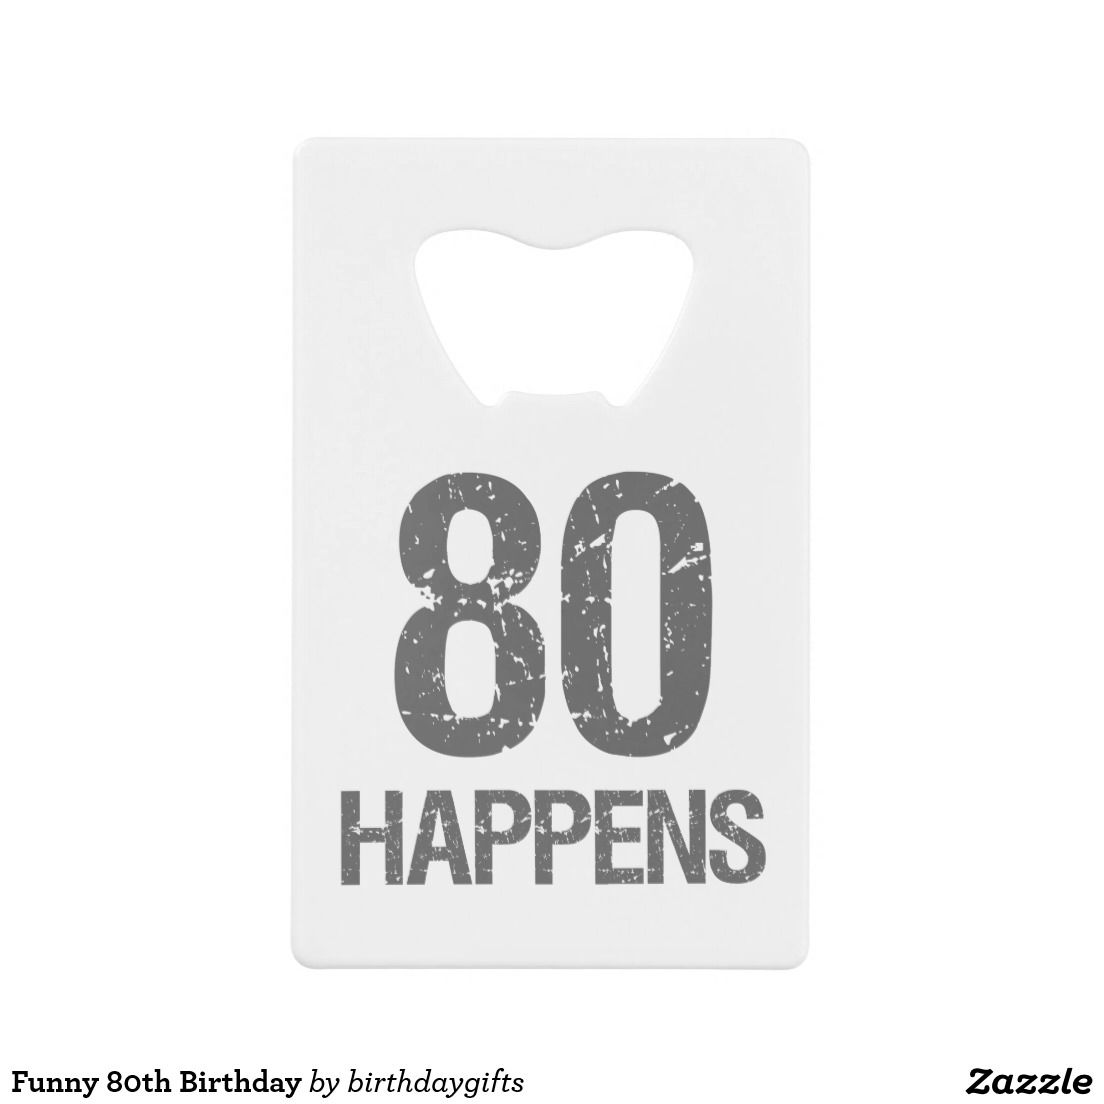 Funny 80th Birthday Credit Card Bottle Opener Credit Card Bottle